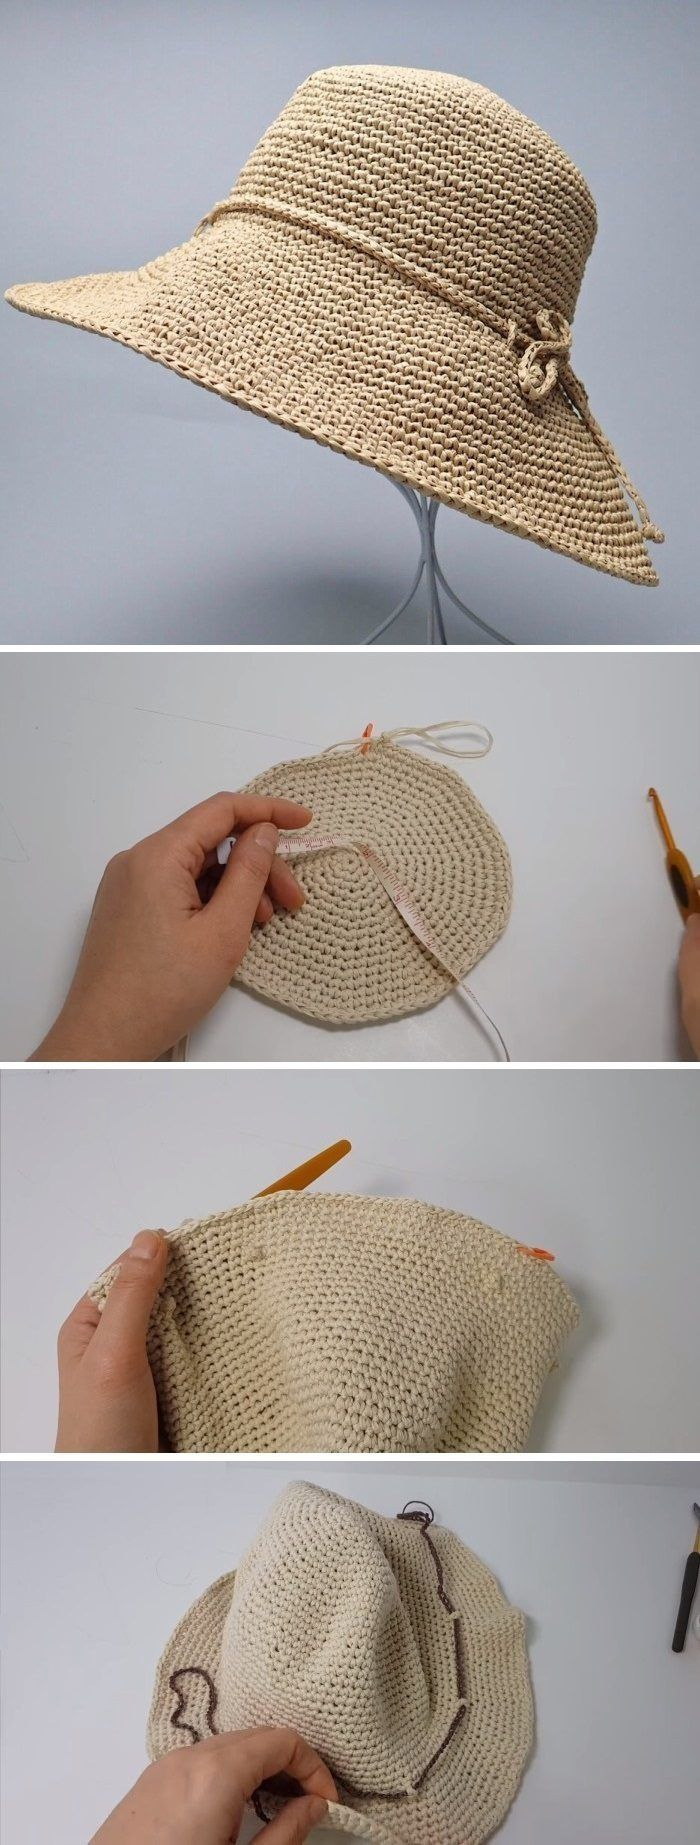 Crochet Summer Hat Tutorial